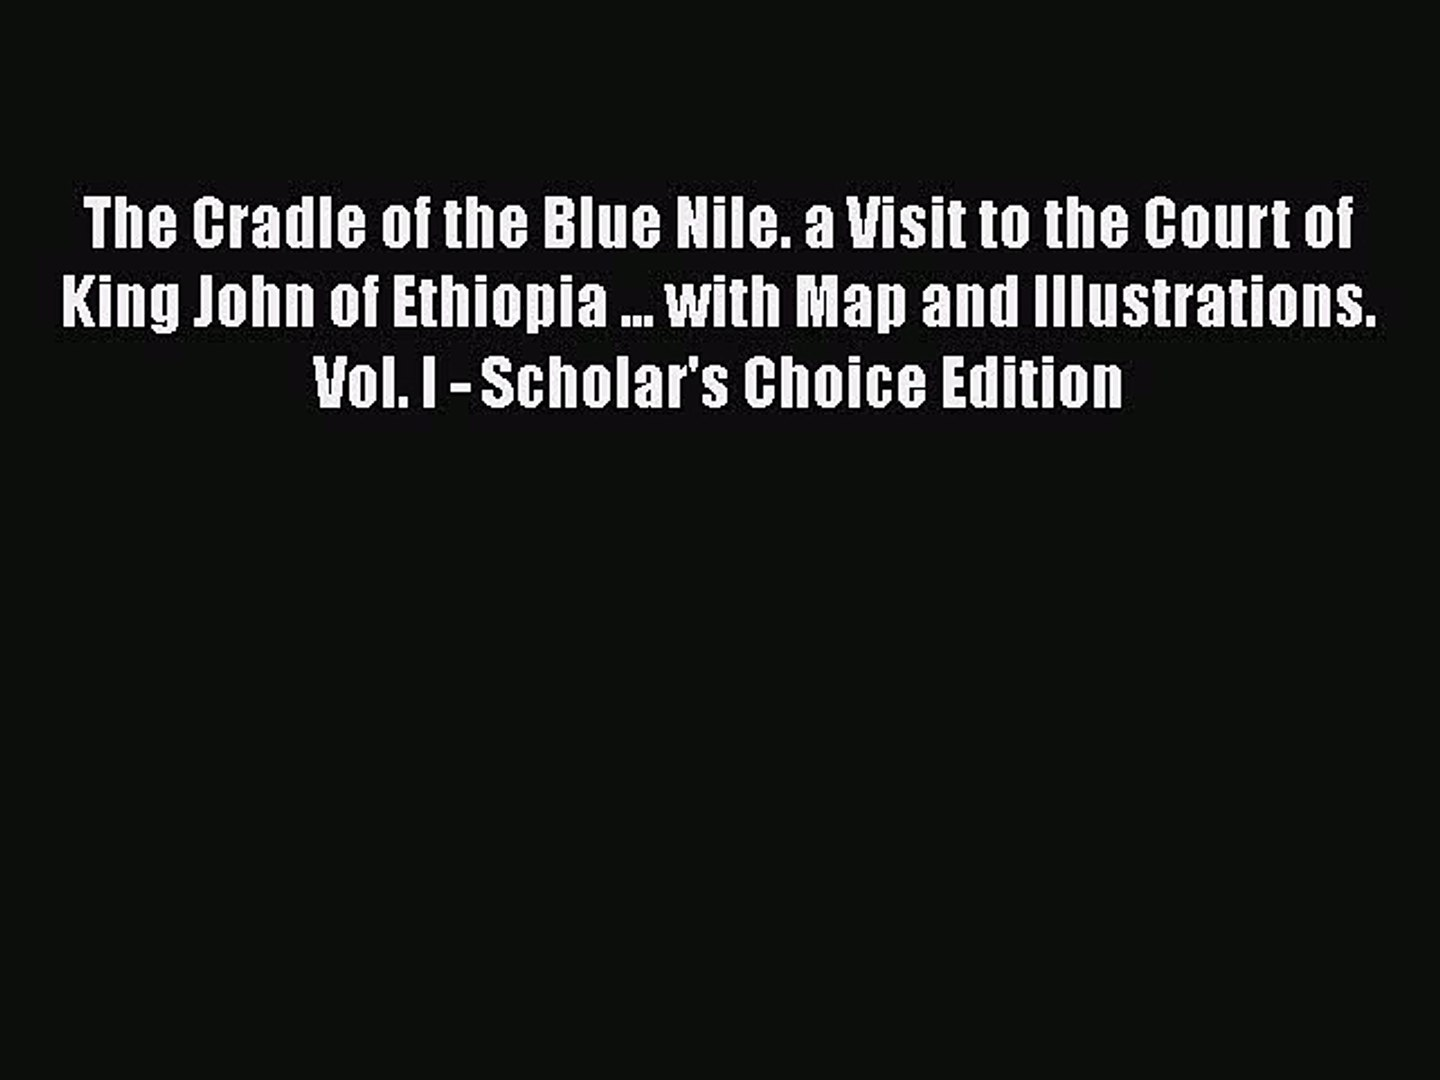 Read The Cradle of the Blue Nile. a Visit to the Court of King John of Ethiopia ... with Map